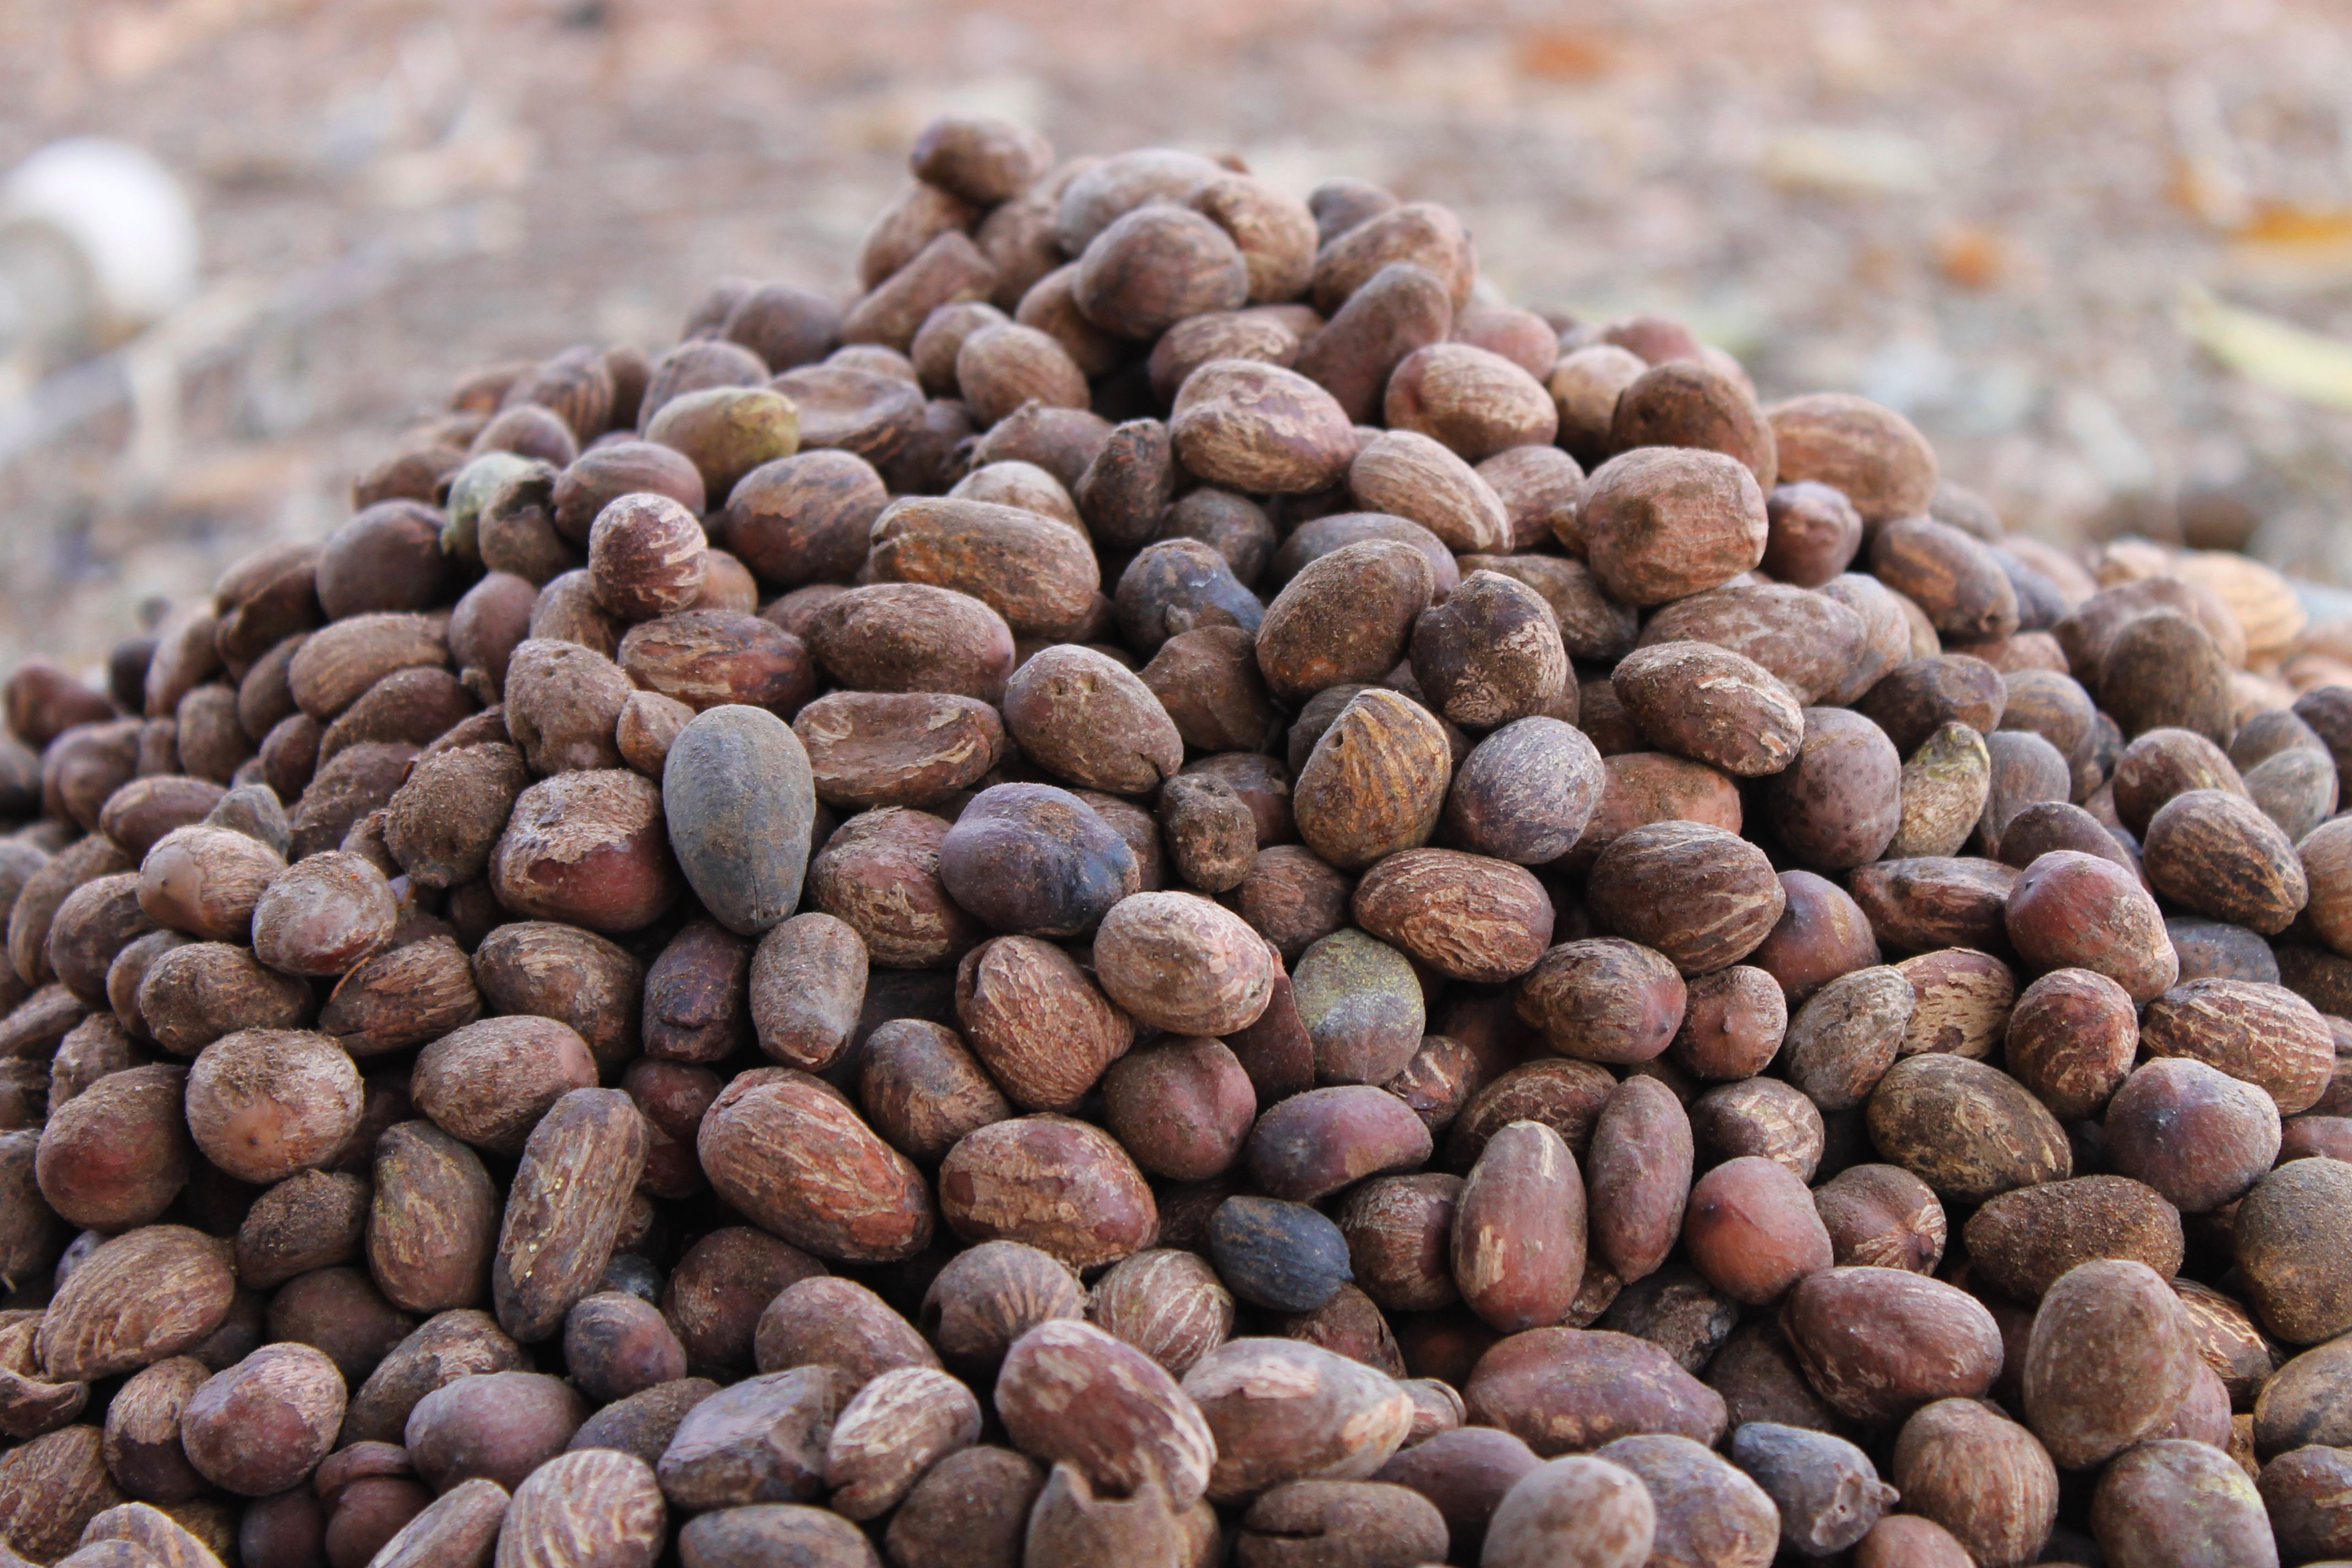 The seeds of shea butter